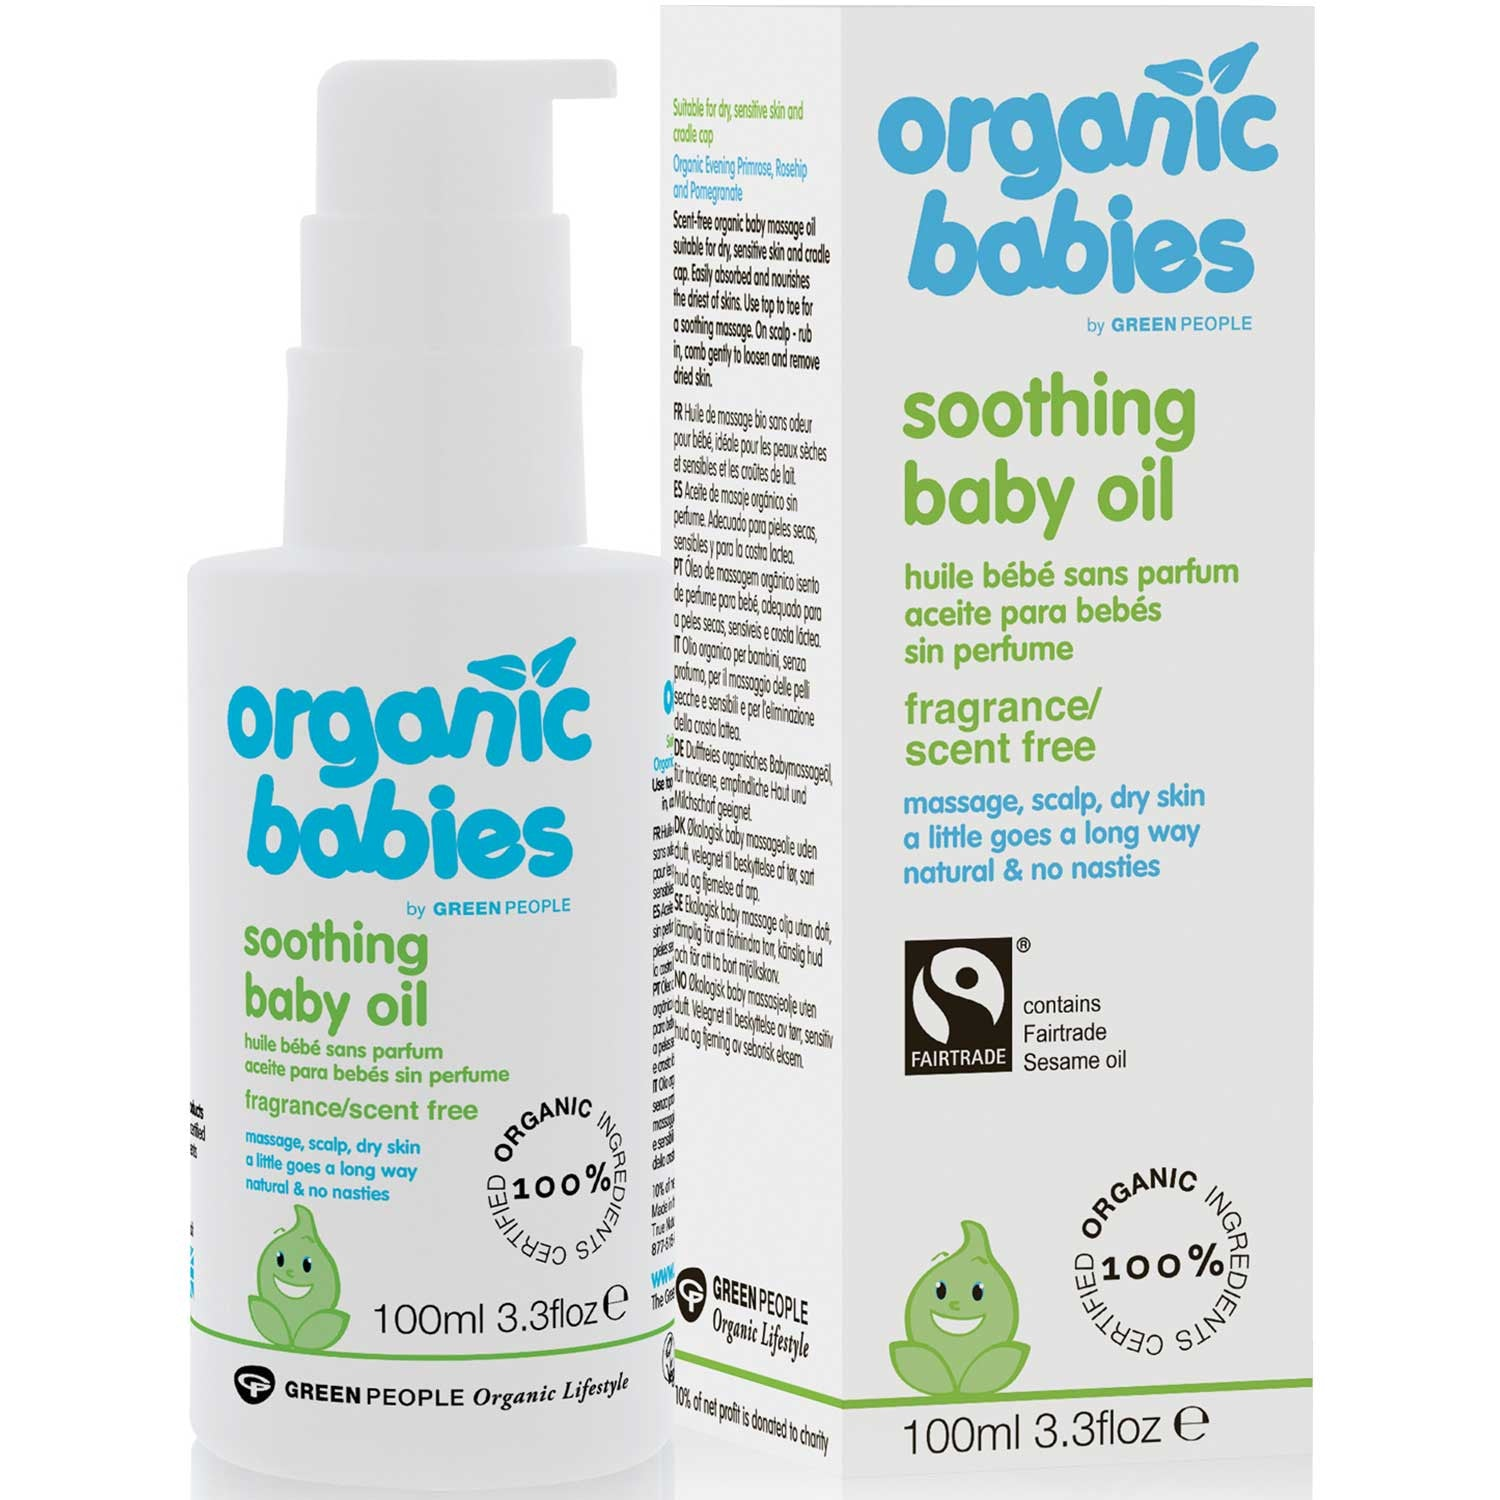 Green People Organic Babies Soothing Baby Oil - No Scent, 100 ml.-NaturesWisdom